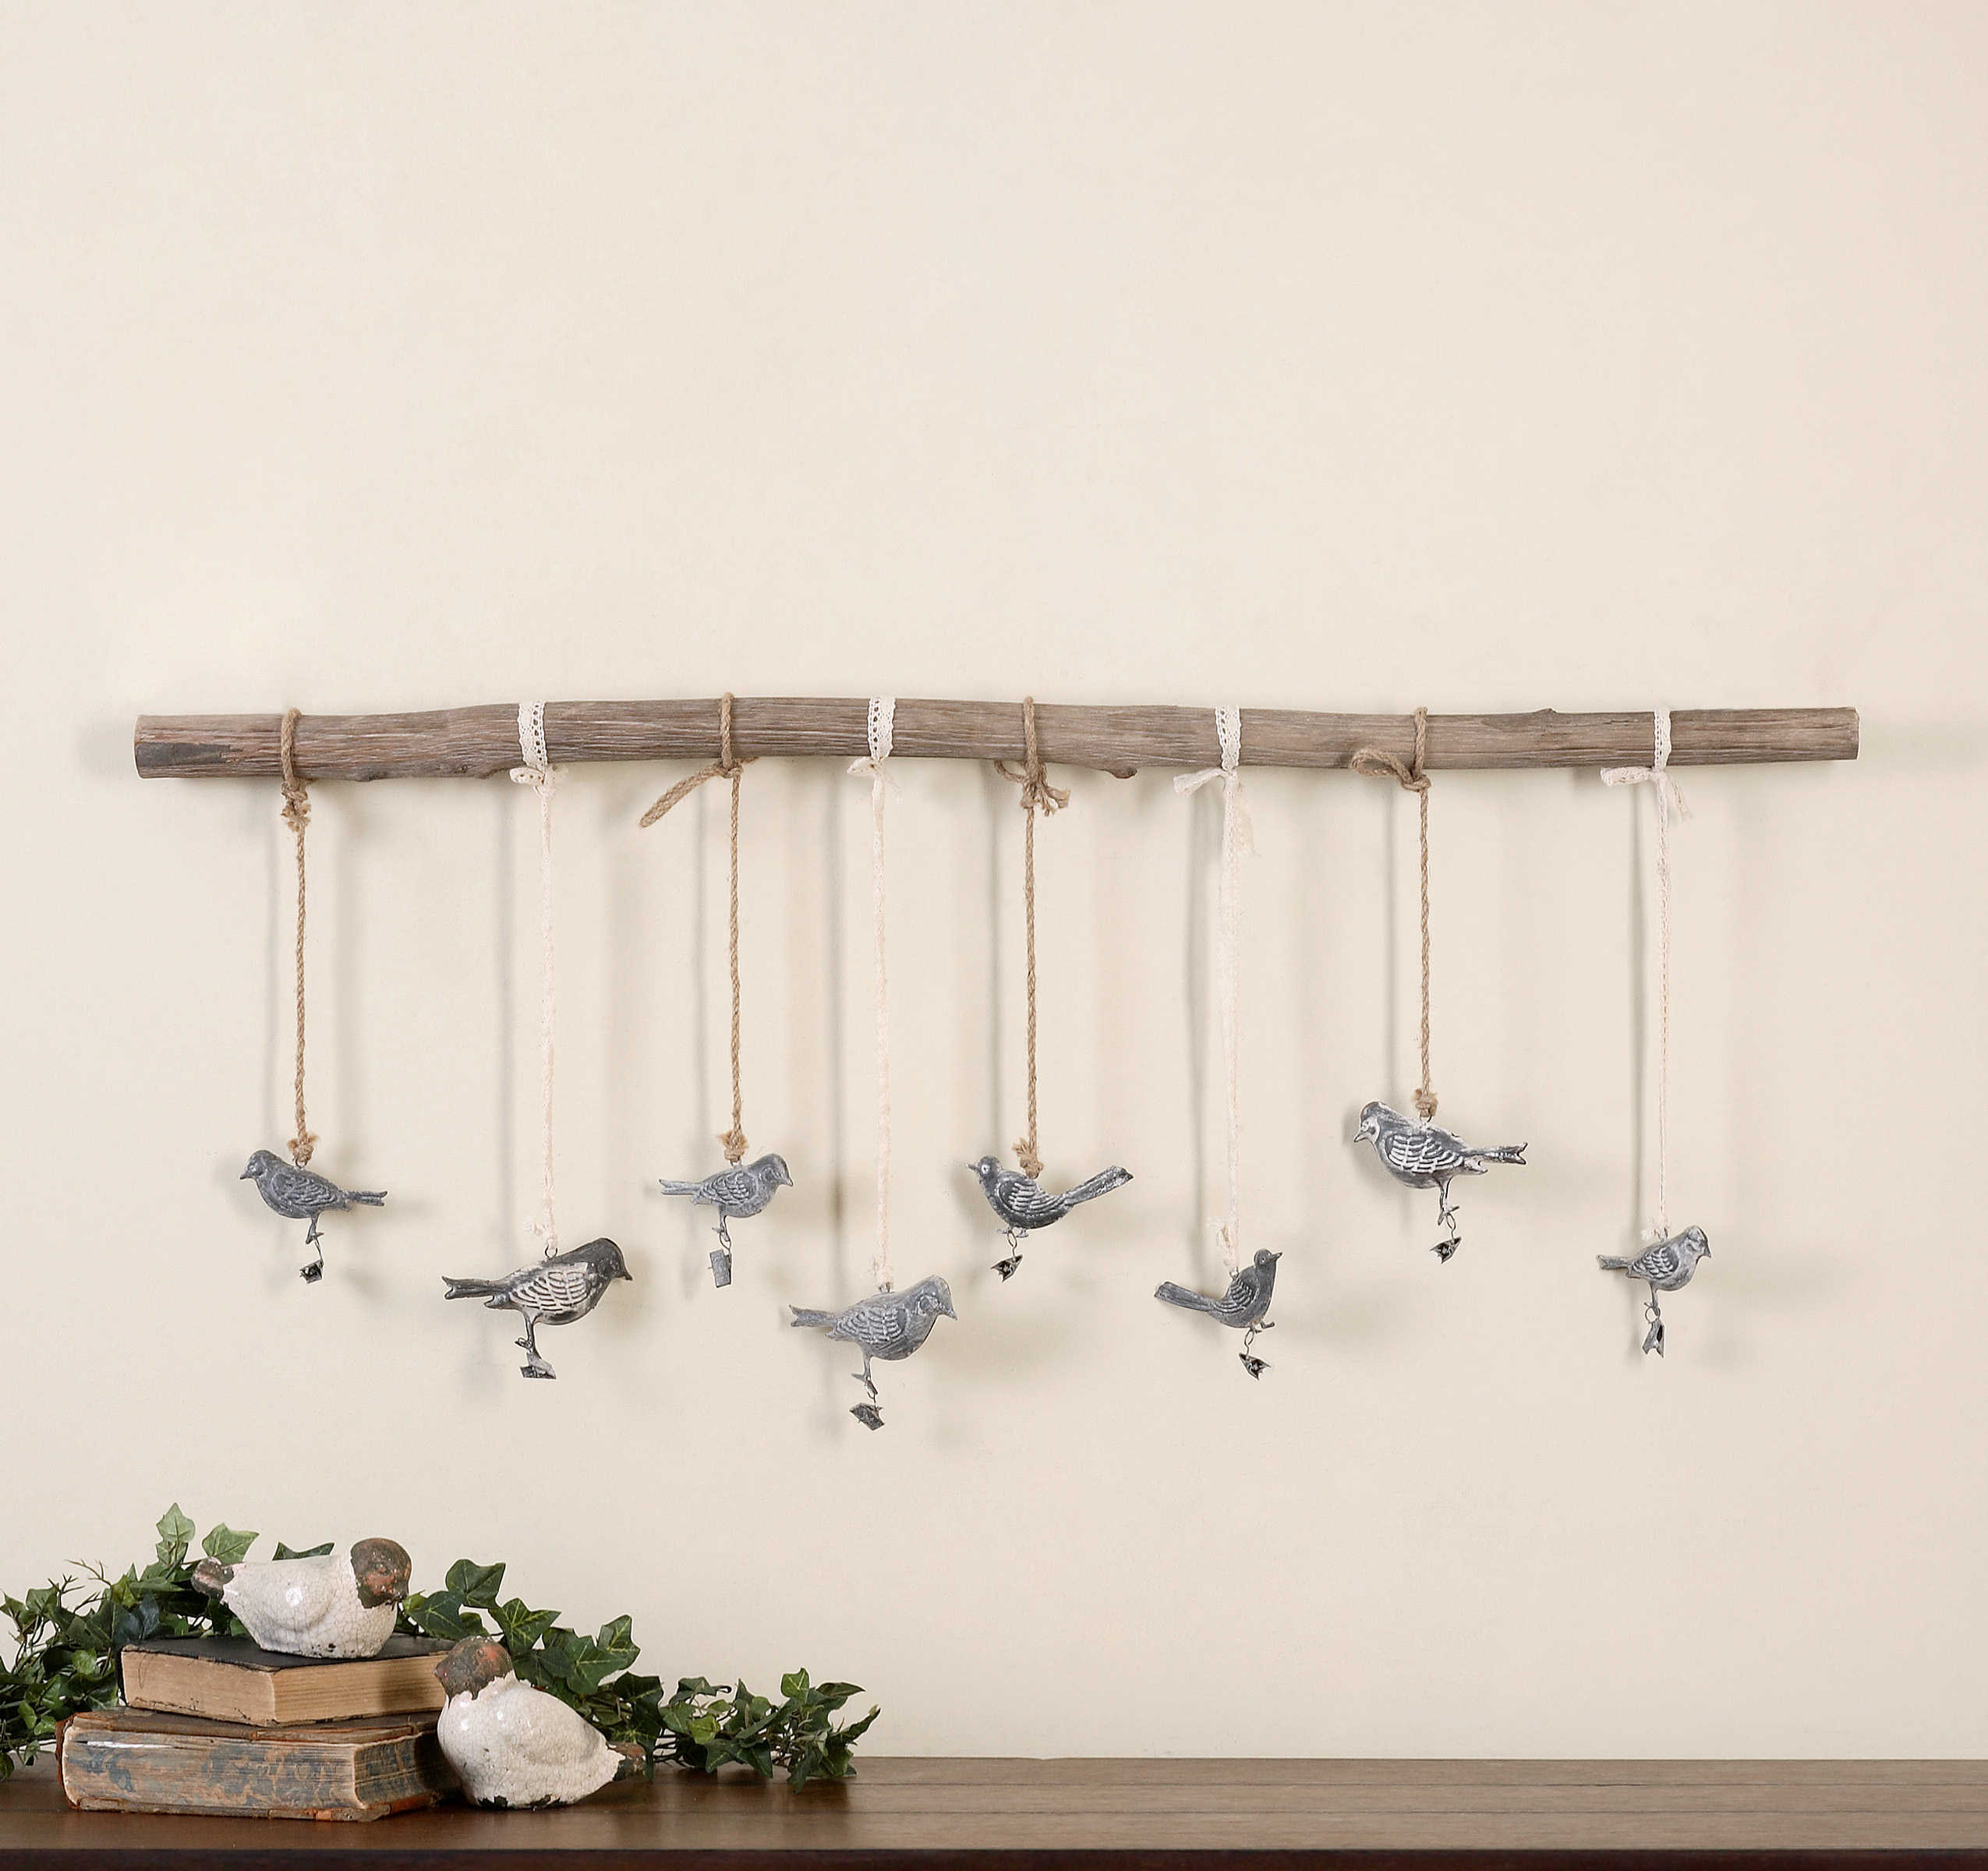 Uttermost Birds On A Branch Wall Art With Regard To Birds On A Branch Wall Decor (View 2 of 30)